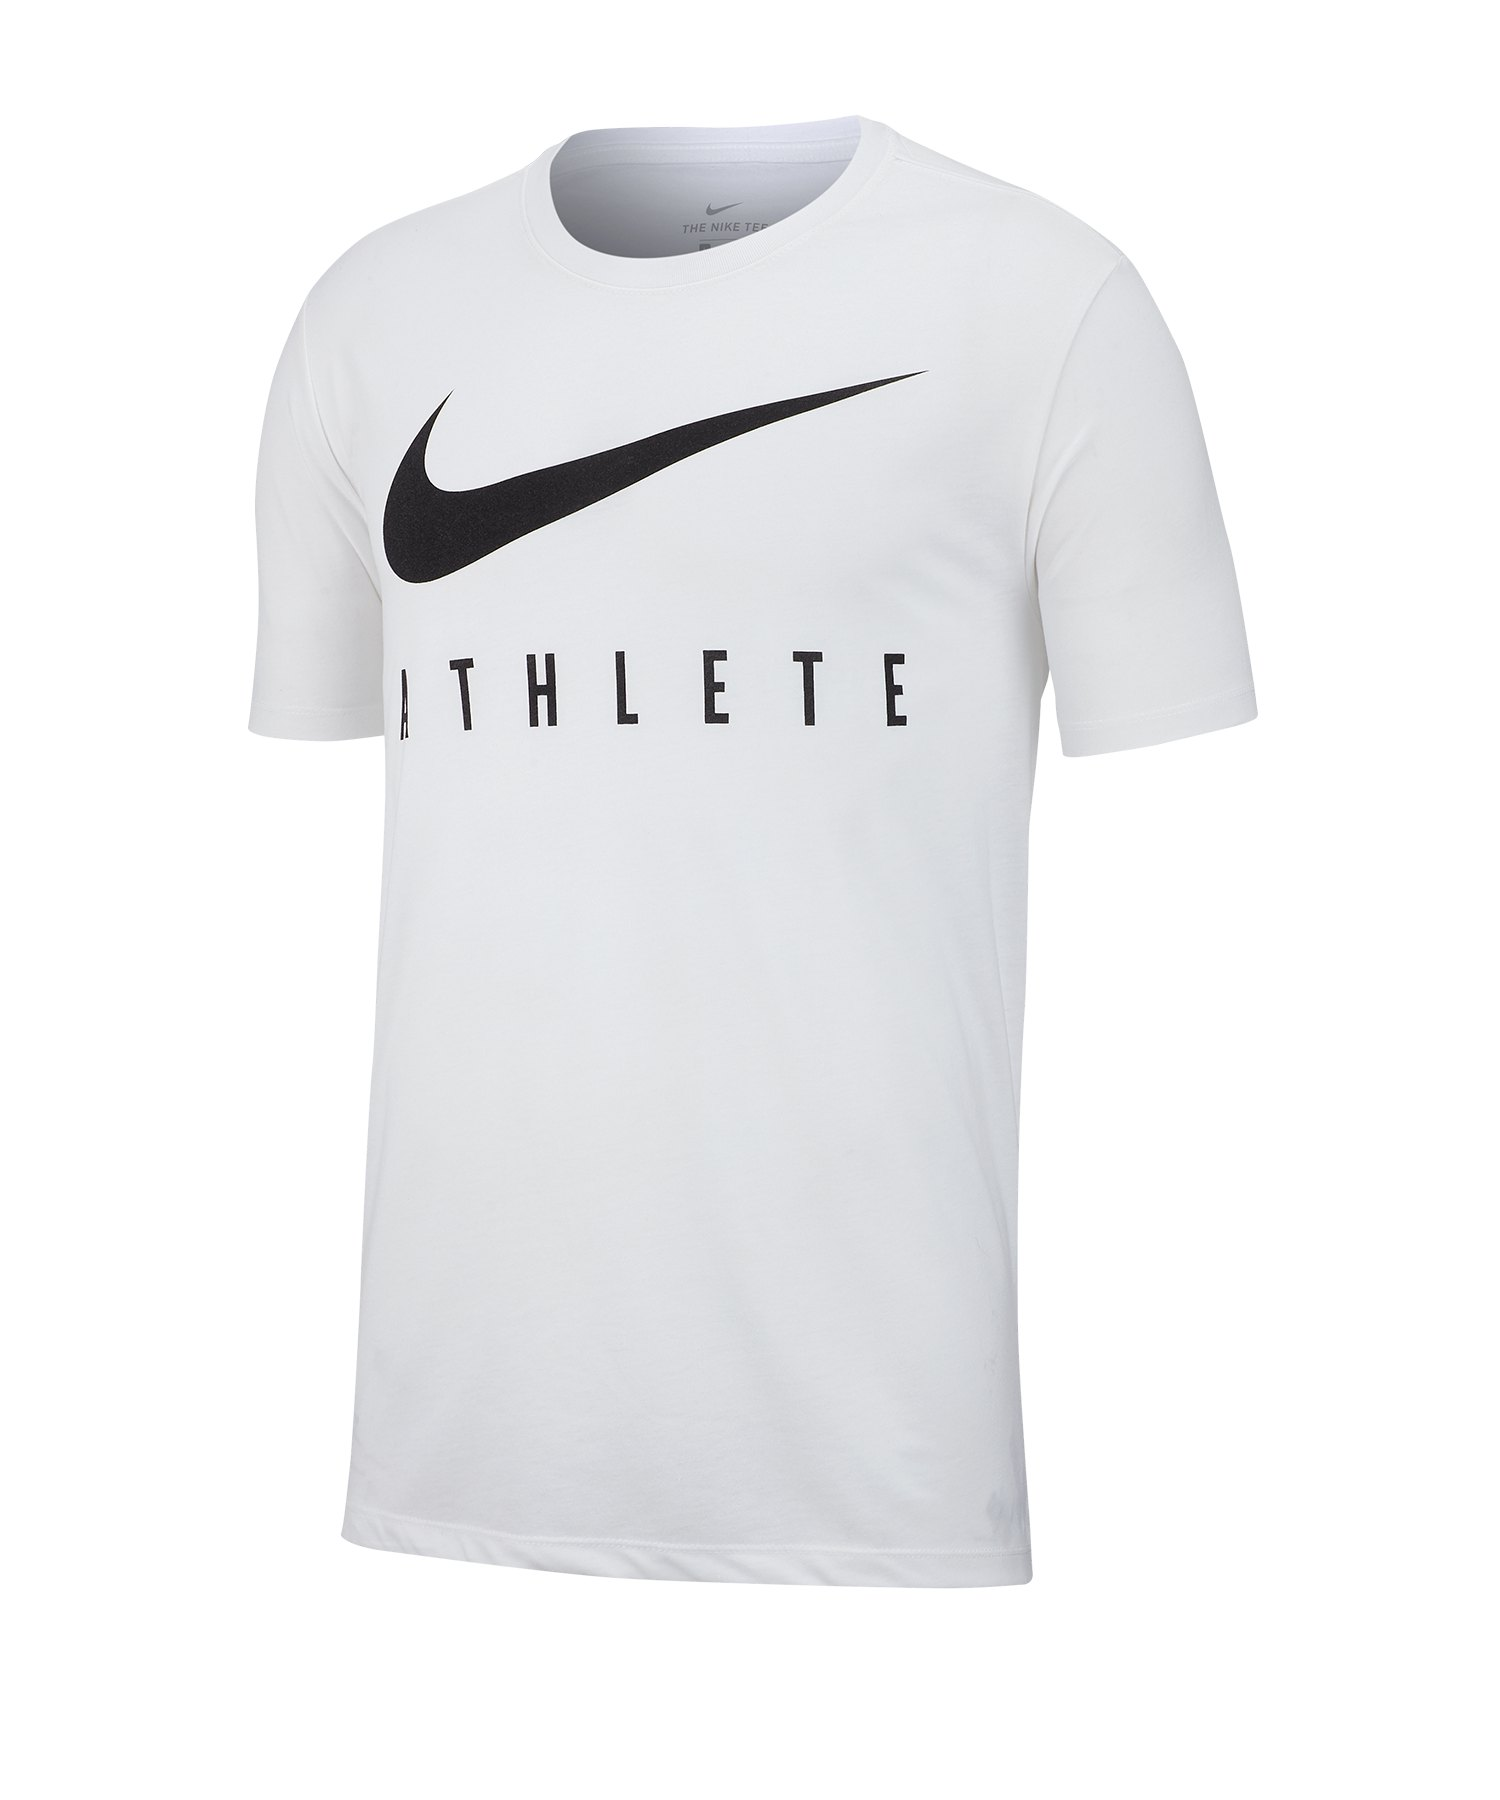 Nike Dri-FIT Athlete T-Shirt Running Weiss F100 - weiss